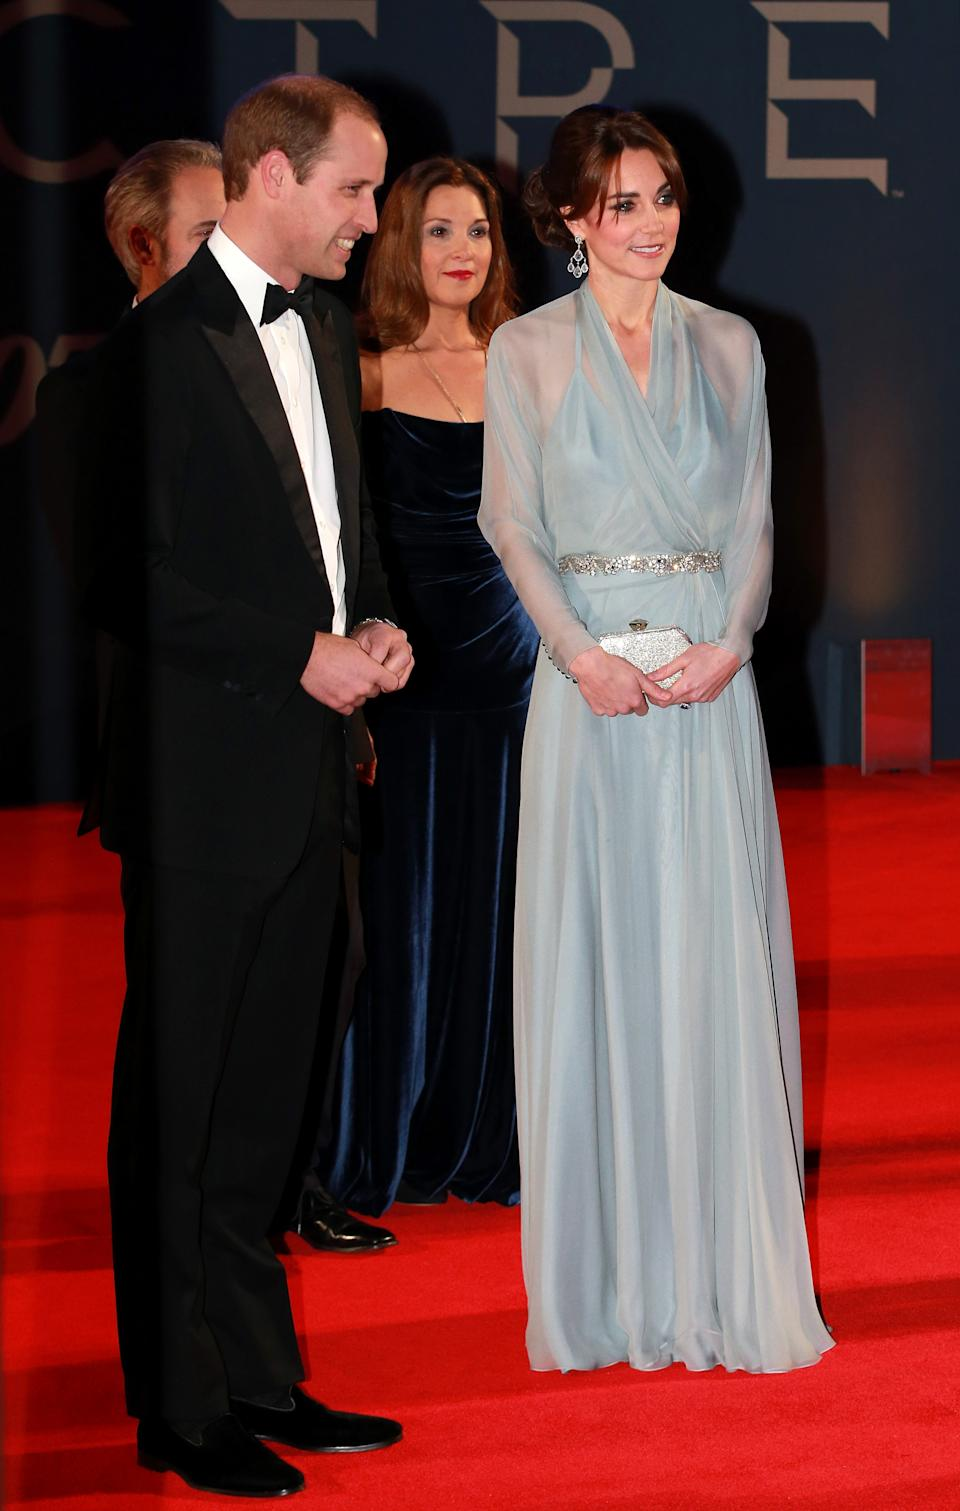 The Duchess of Cambridge also wore a Jenny Packham dress in 2015, at the 24th James Bond film,